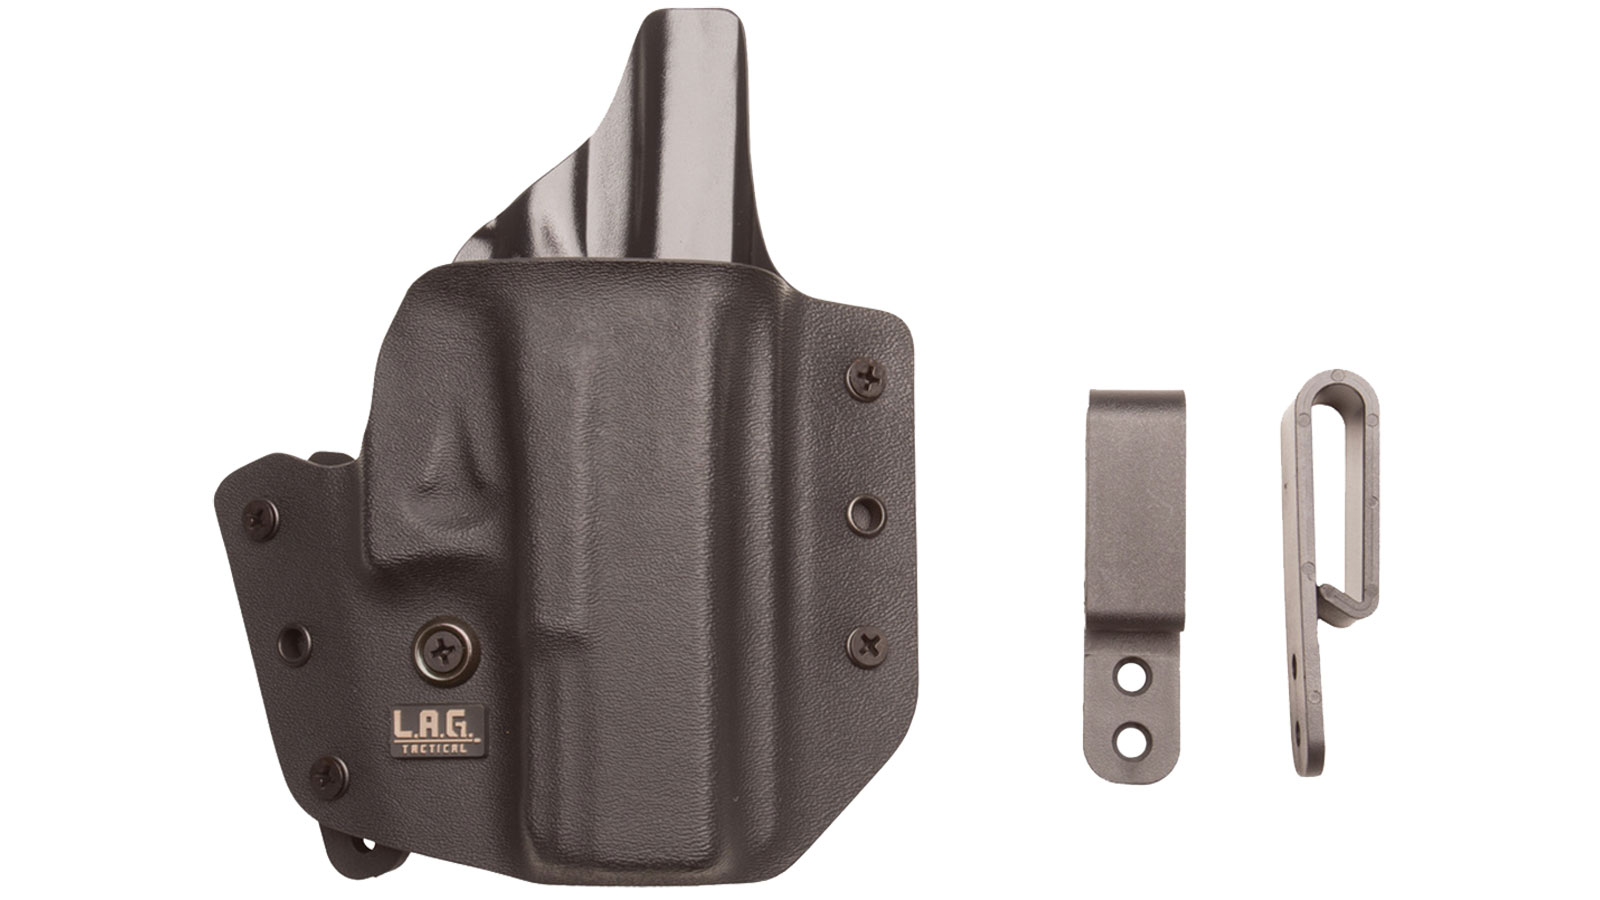 L.A.G. Tactical The DEFENDER Black for Sig P250|P320 Sub-Compact